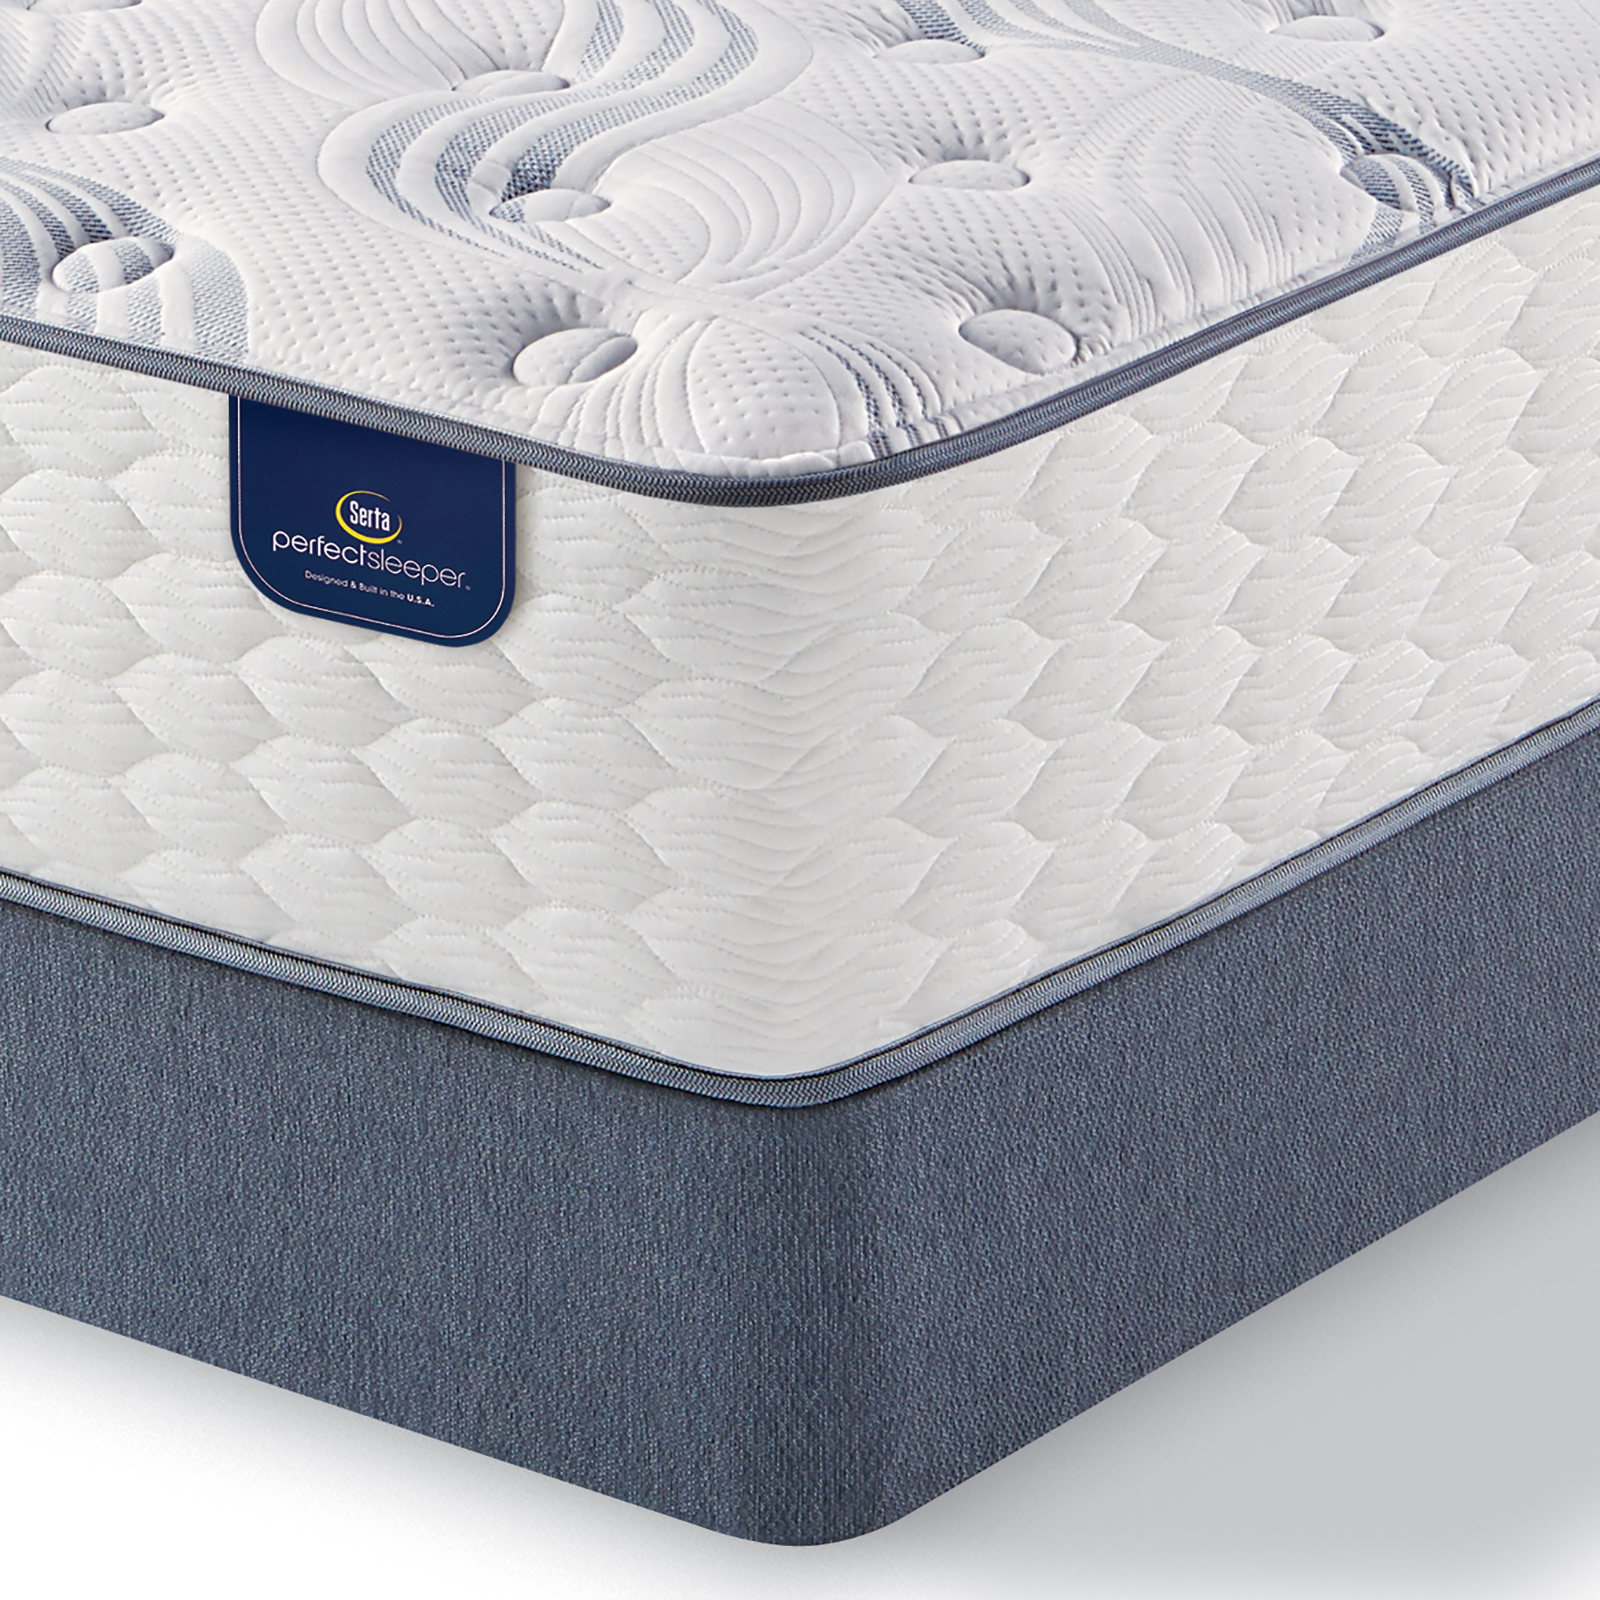 shop for queen mattresses at sears hometown stores in logan oh find a great selection of appliances from the top brands at discount prices buy today online or in your local store